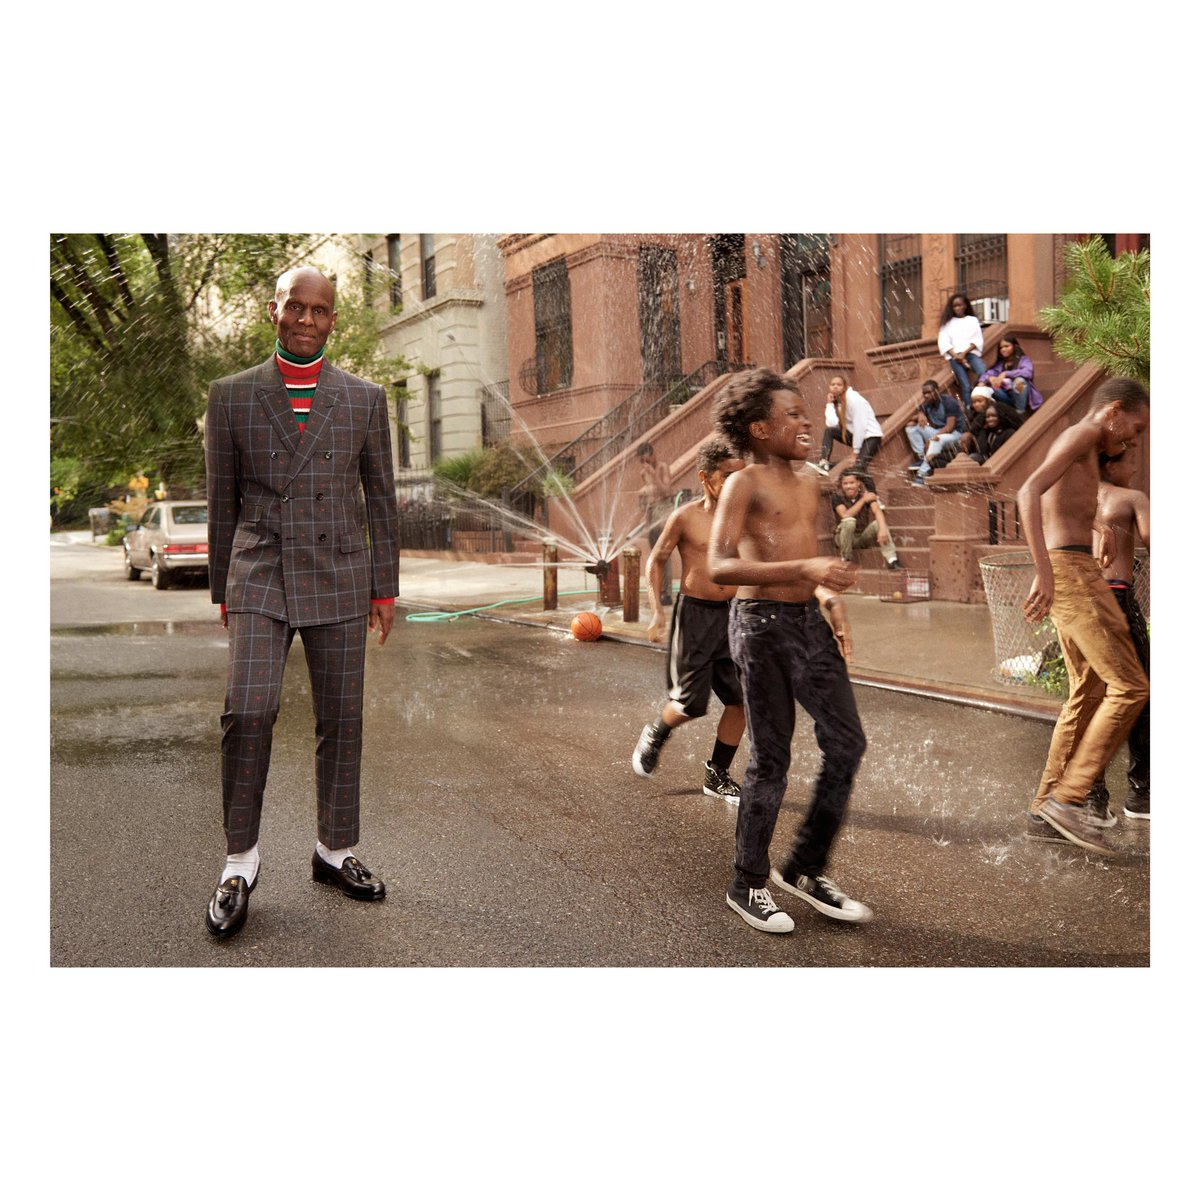 Introducing Dapper Dan @dapperdanharlem, the face of the new men's #GucciTailoring campaign. #AlessandroMichele